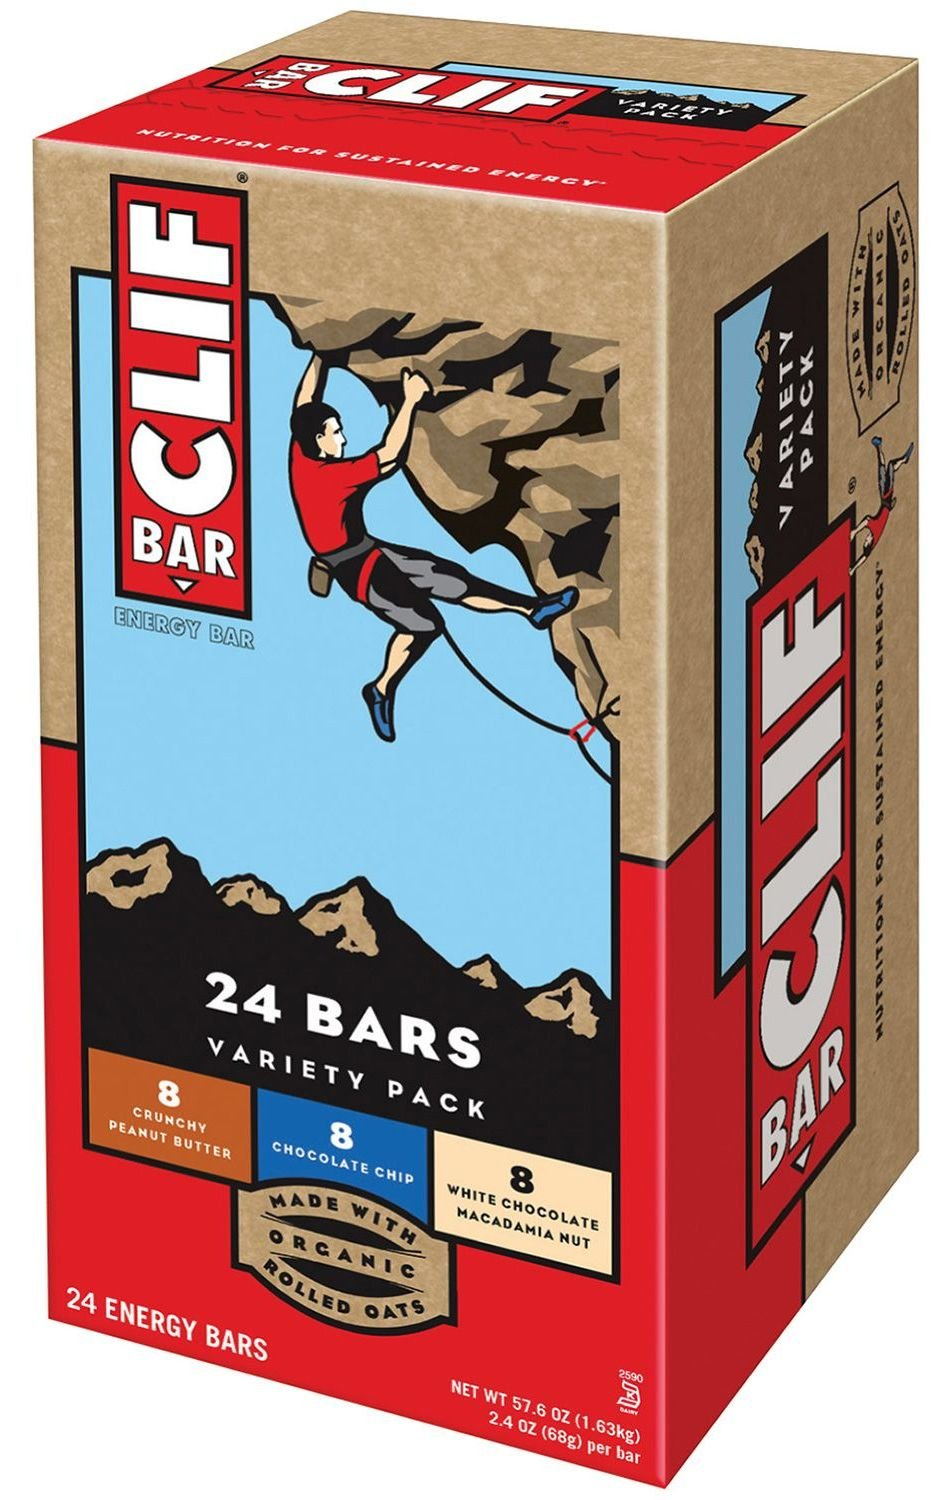 Clif Bar Variety Pack 48 Count Energy Bar (Chocolate Chip, White Chocolate Macadamia Nut, Crunchy Peanut Butter)